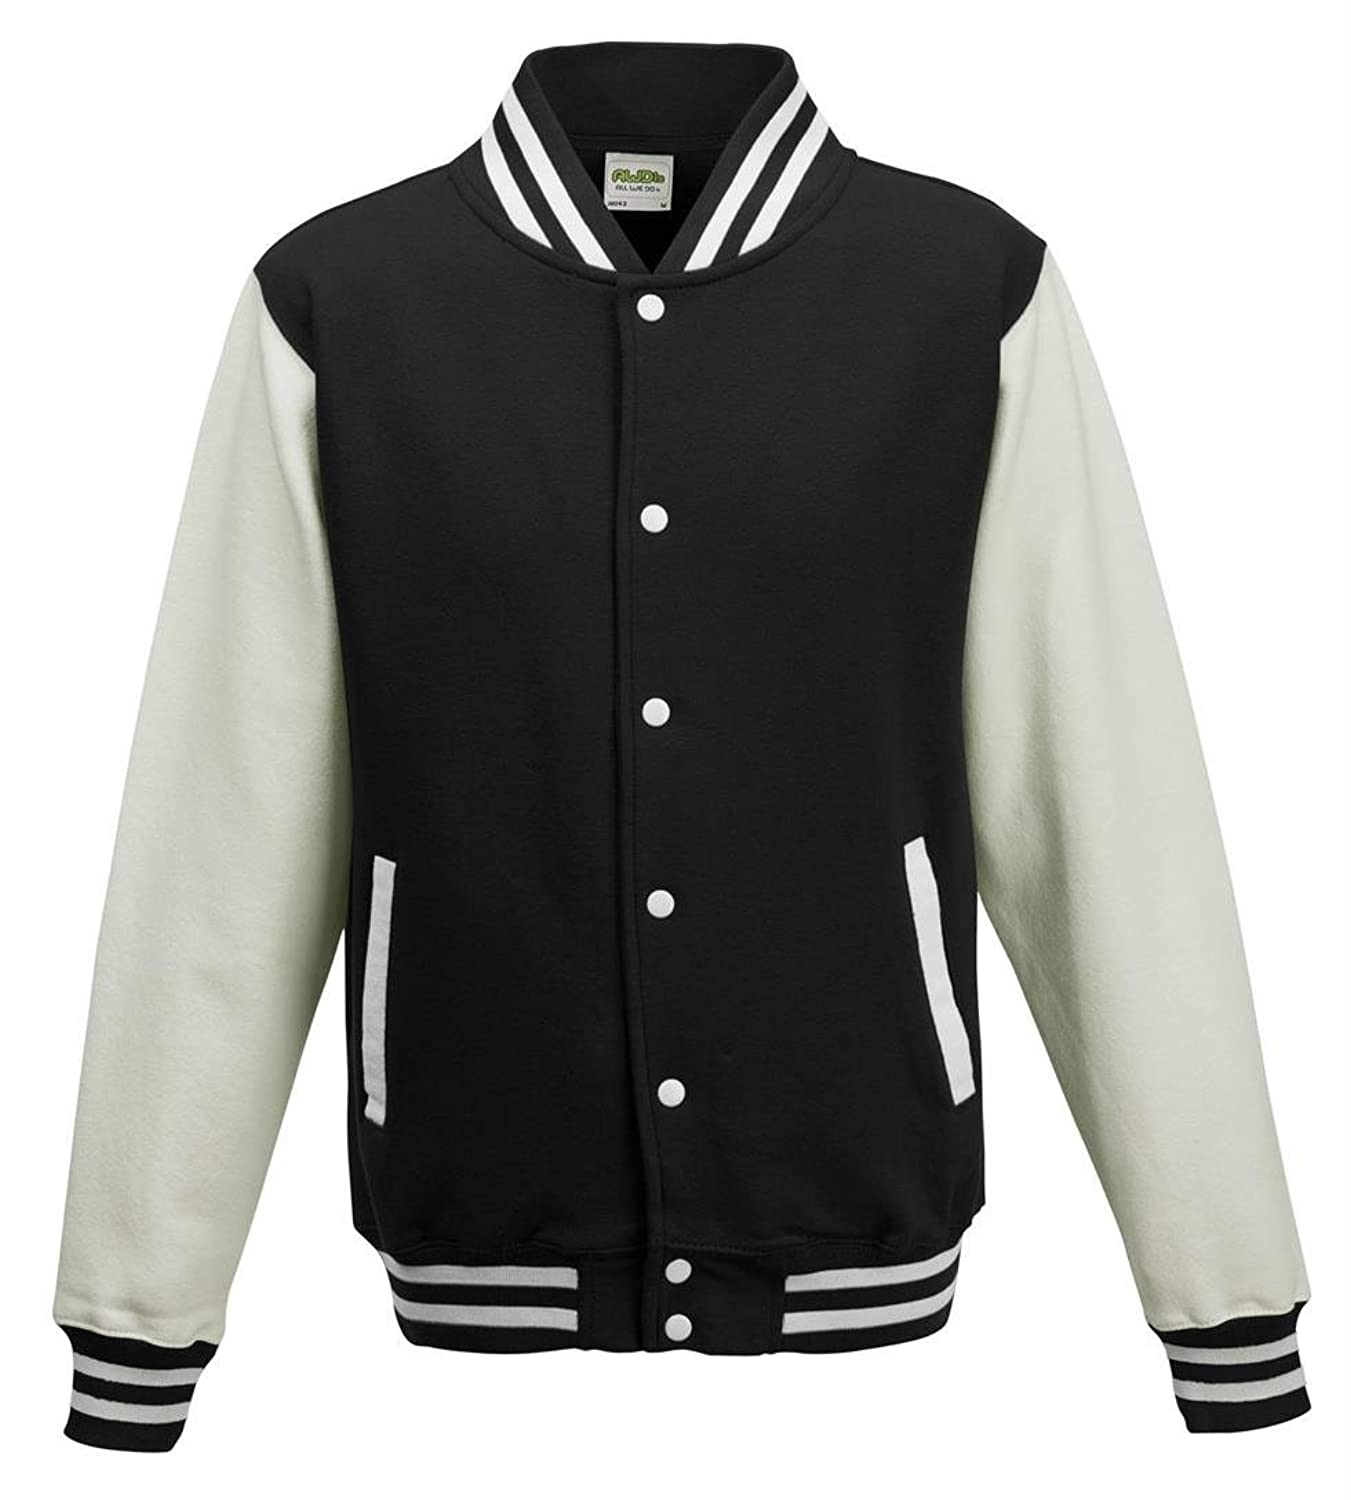 Men's Vintage Style Coats and Jackets Plain Varsity jacket - 16 Colours - Sizes XS to 2XL  AT vintagedancer.com